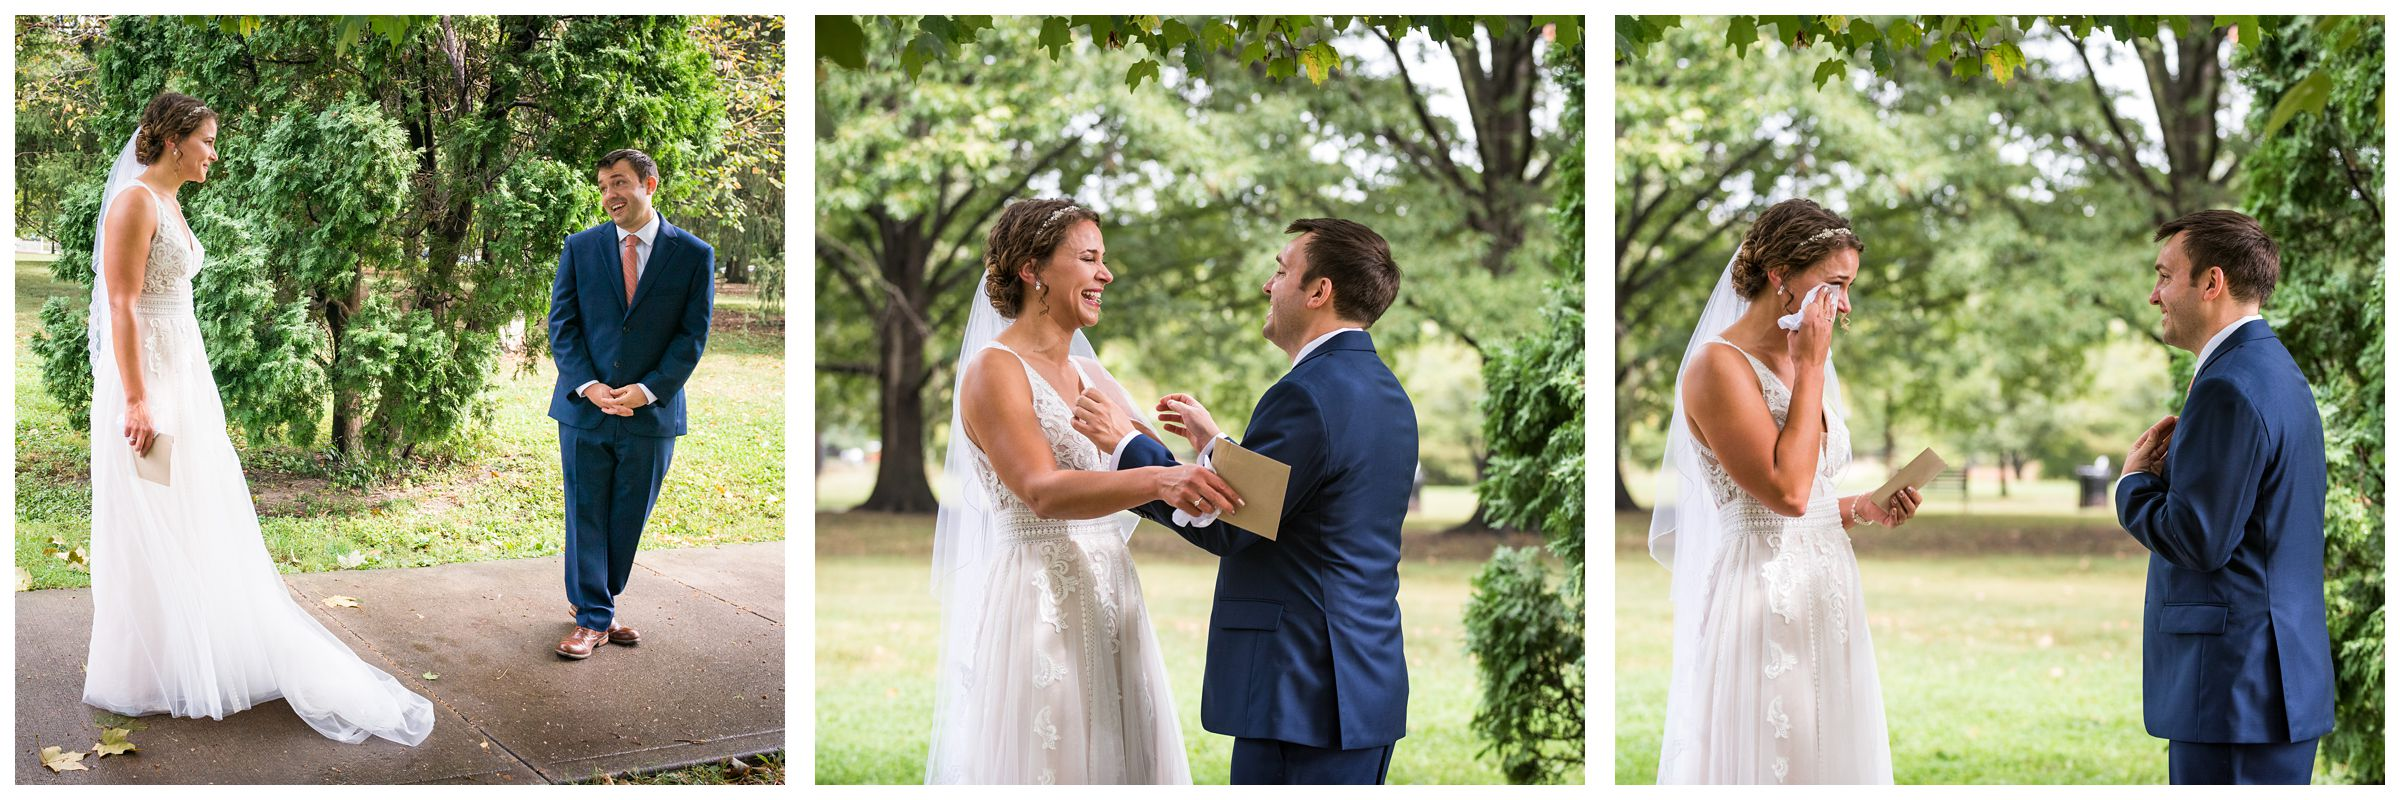 bride and groom reaction during first look at Goodale Park in the Short North neighborhood of Columbus Ohio